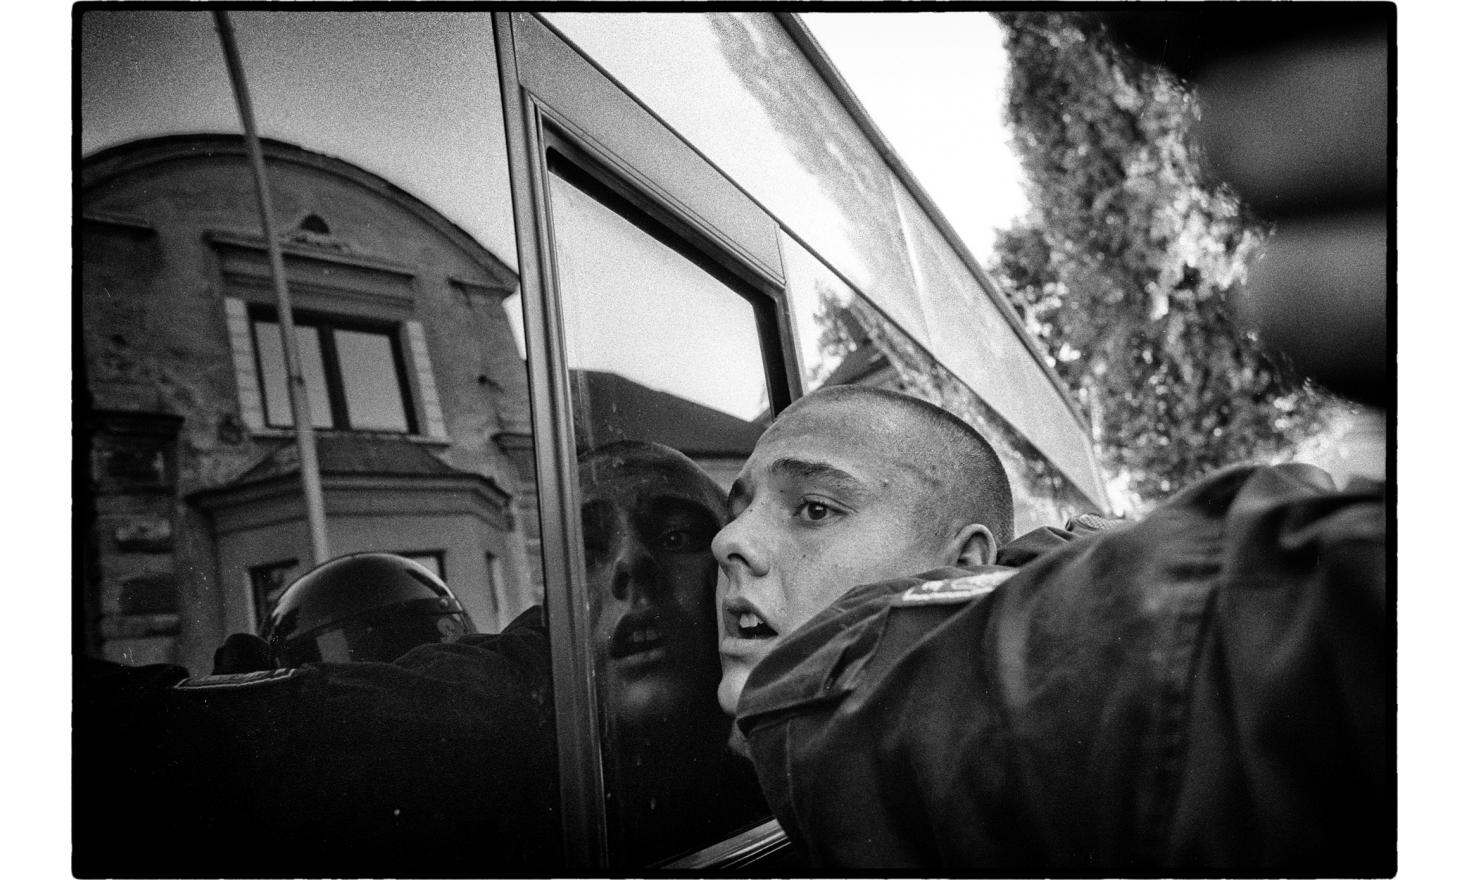 An arrest has been made of a neo nazi demonstrator against Roma living in a social hotel.The demonstration turned violent and a pogrom has been avoided by anti riot police. Varnsdorf, Czech Republic. September 2011.